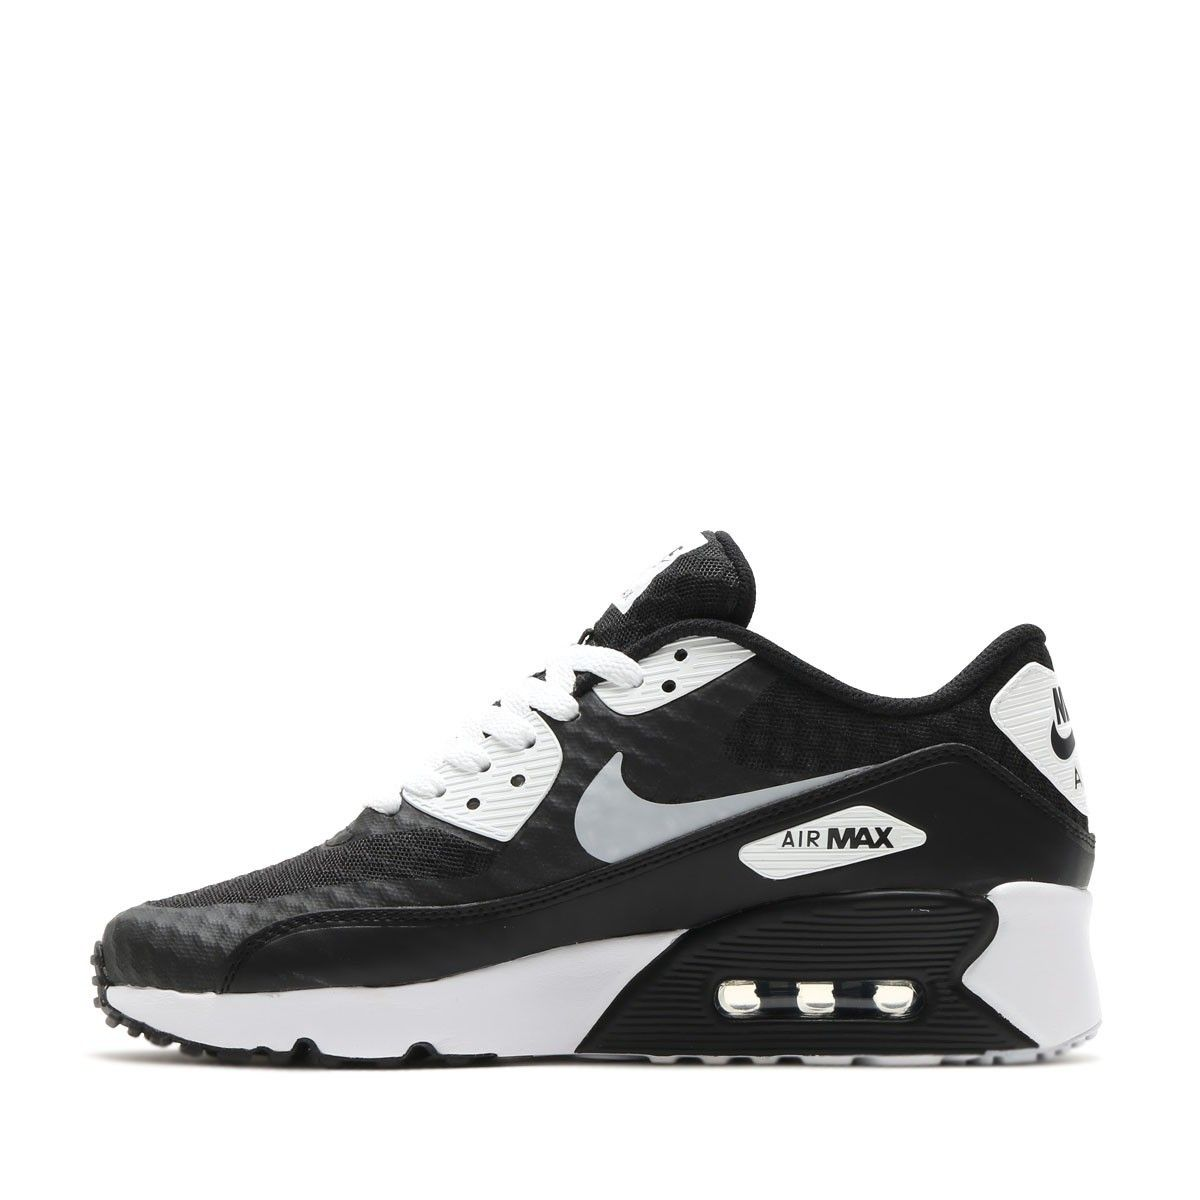 pretty nice 32282 8b397 Nike Basket Nike Air Max 90 Ultra 2.0 BR Junior - 881925-001. Loading zoom